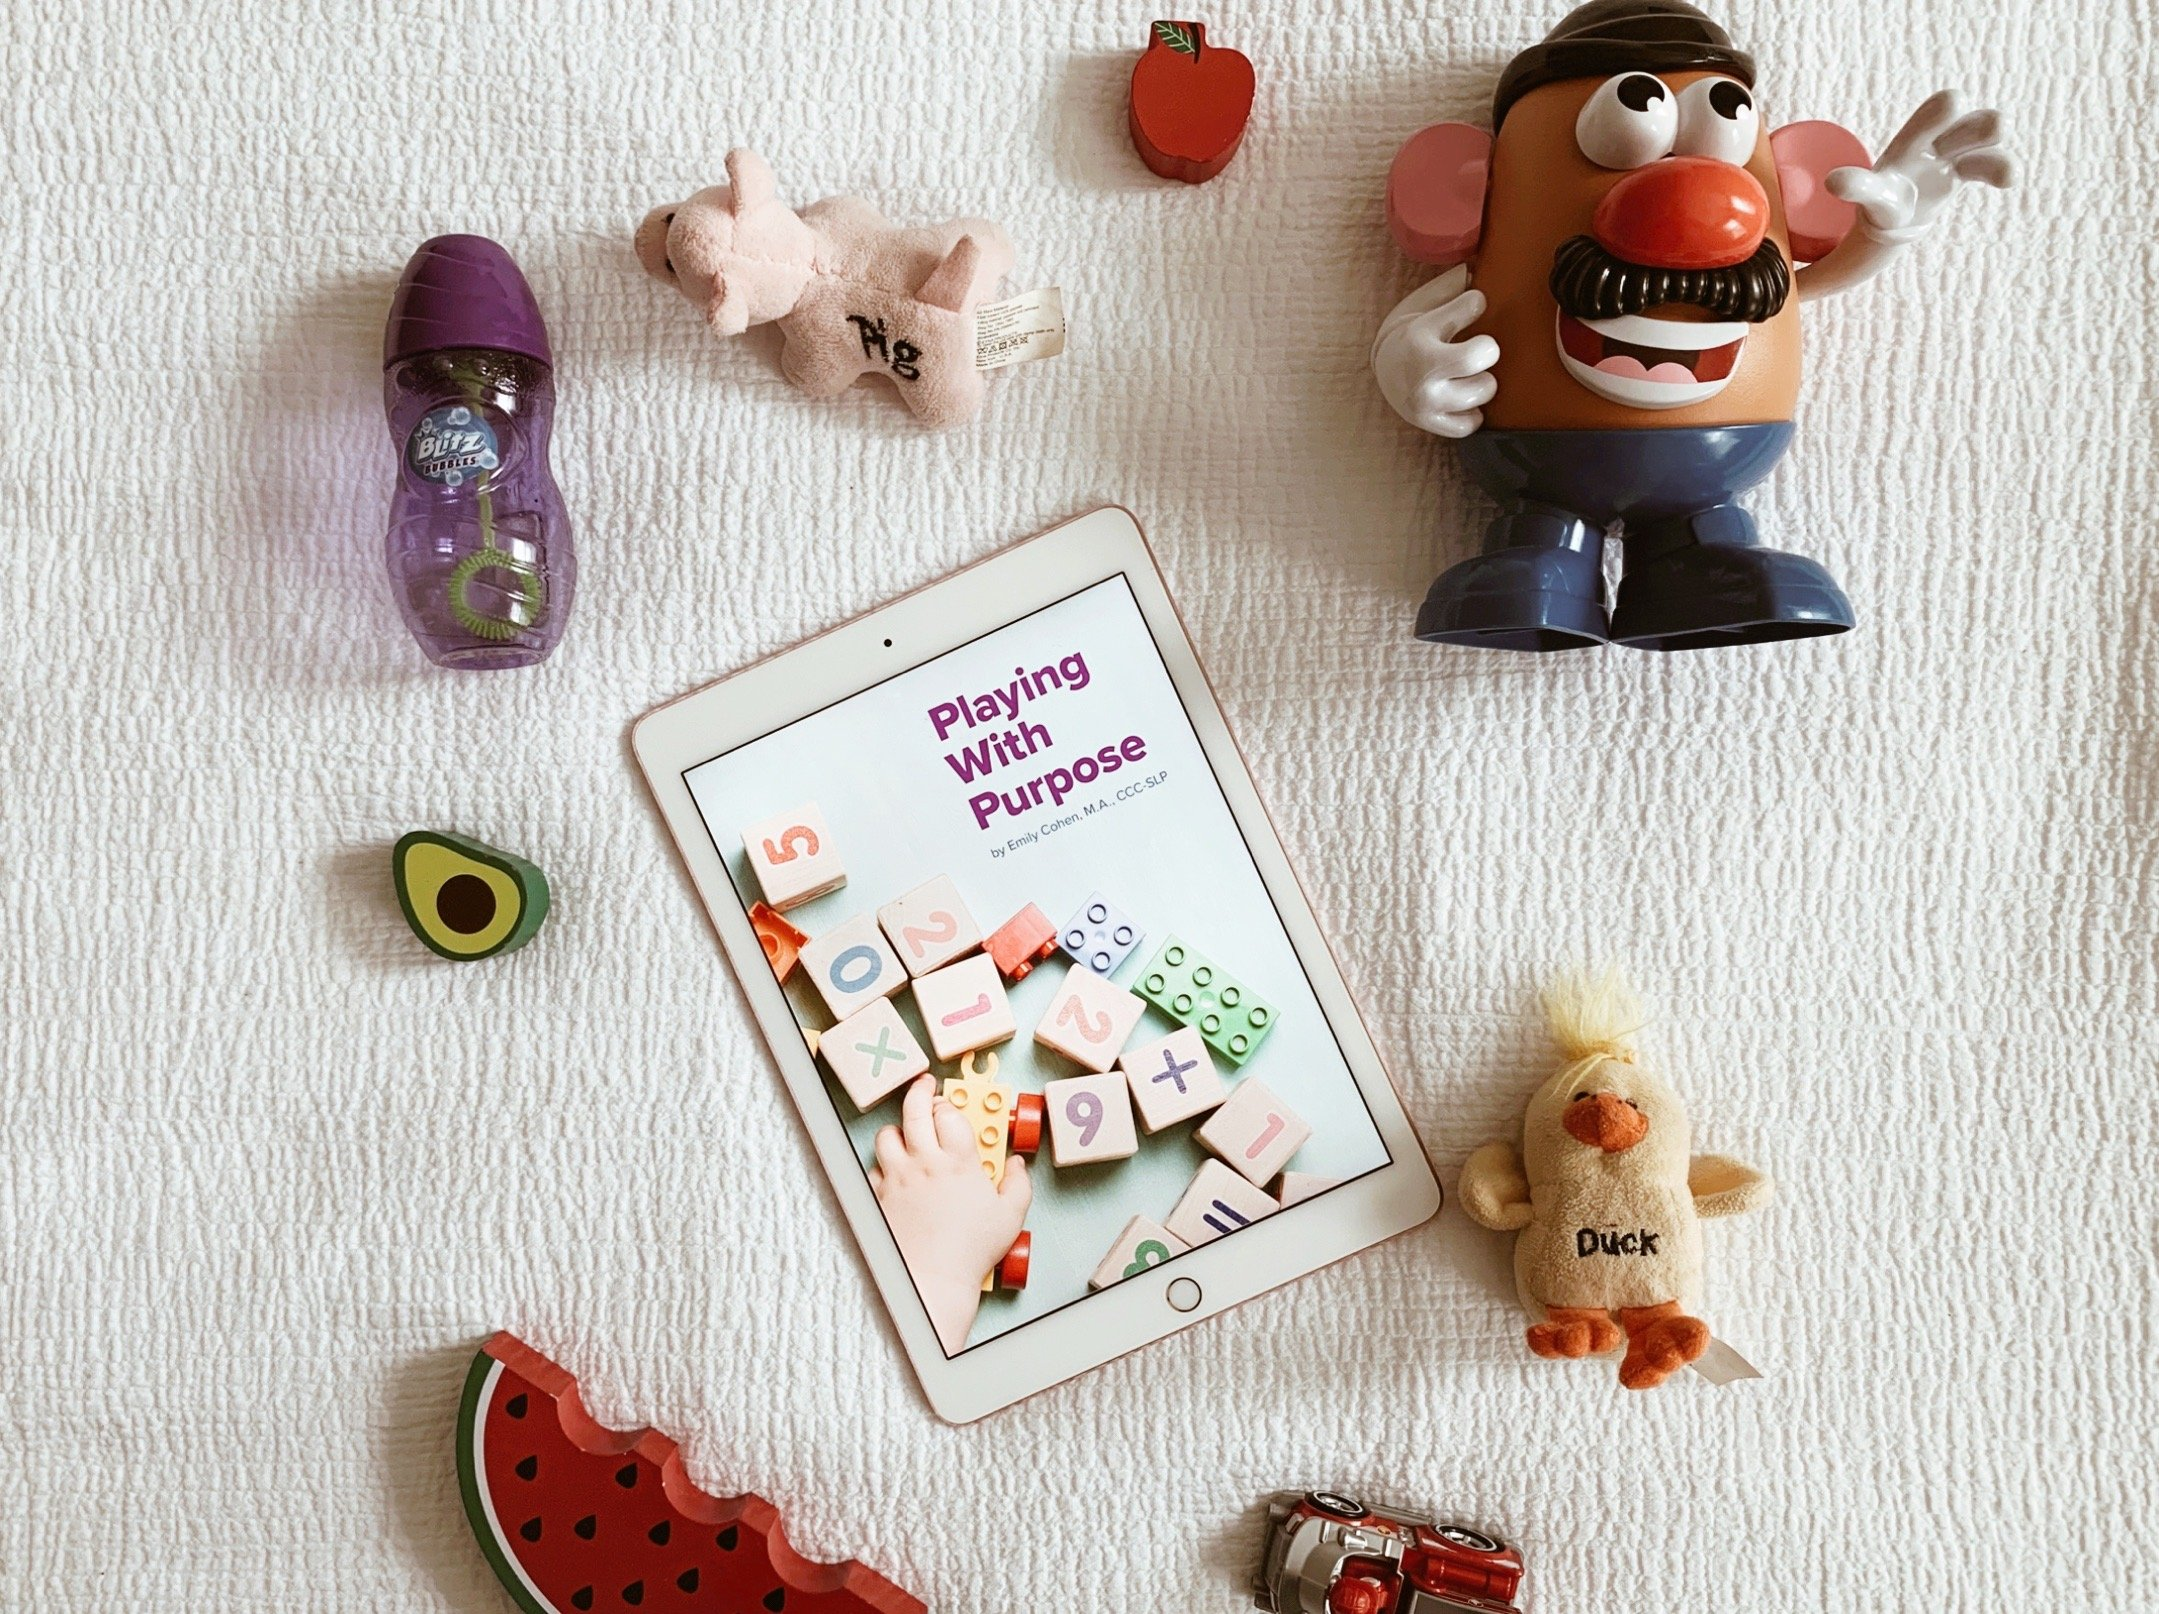 toys and ipad on bed